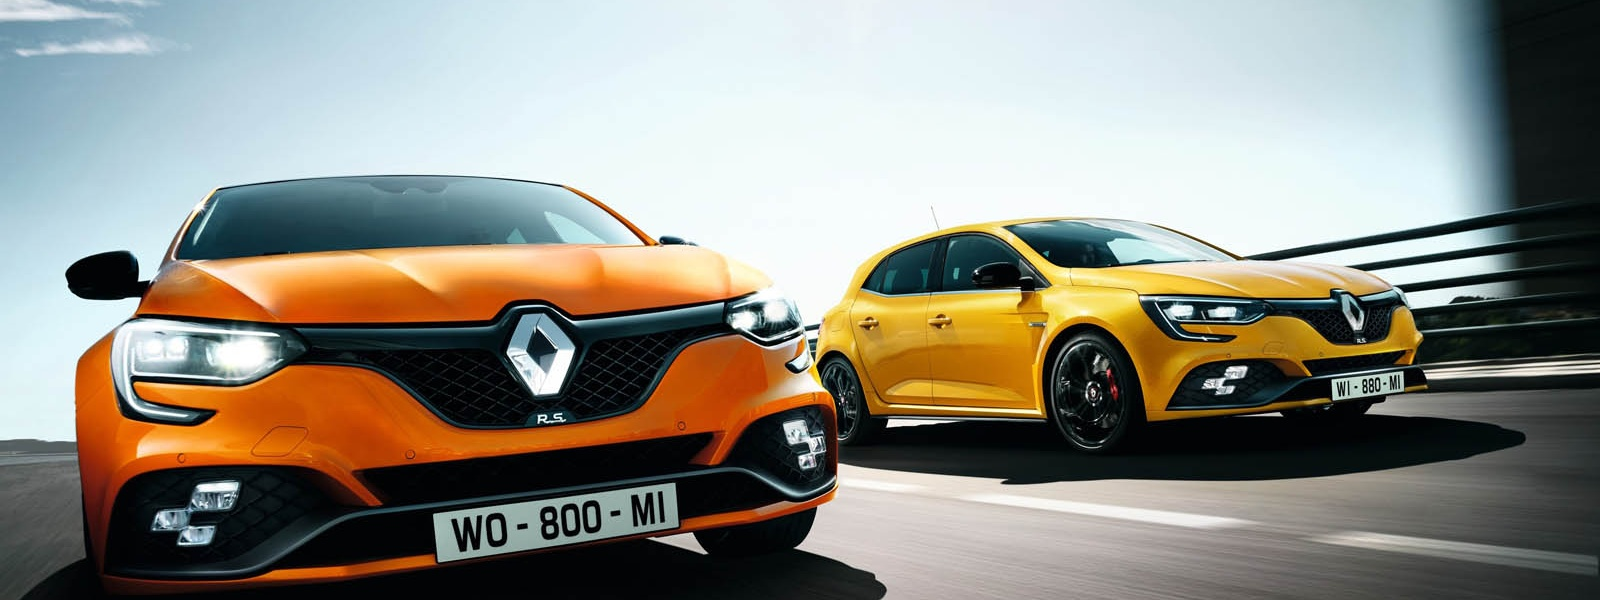 21195088_2017_New_Renault_MEGANE_R_S copy.jpg